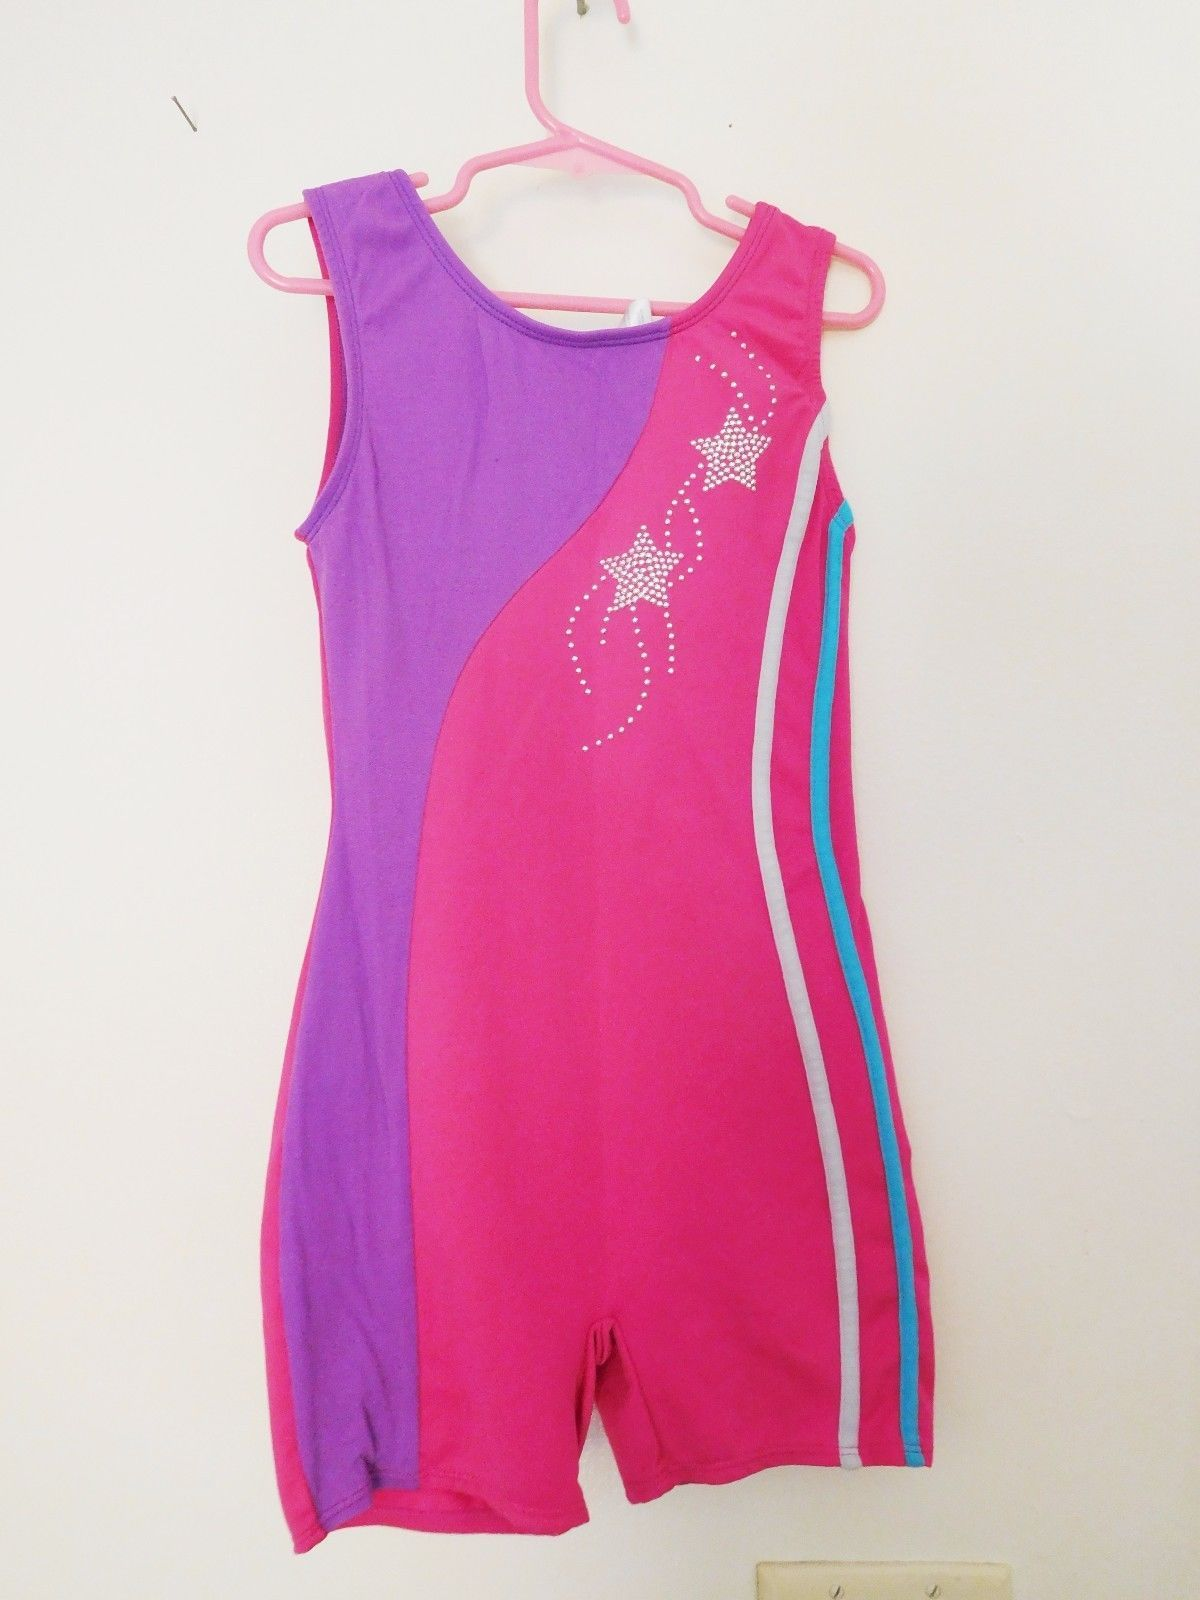 548f88203b0a Moret Active Girl Leotard Biketard and 31 similar items